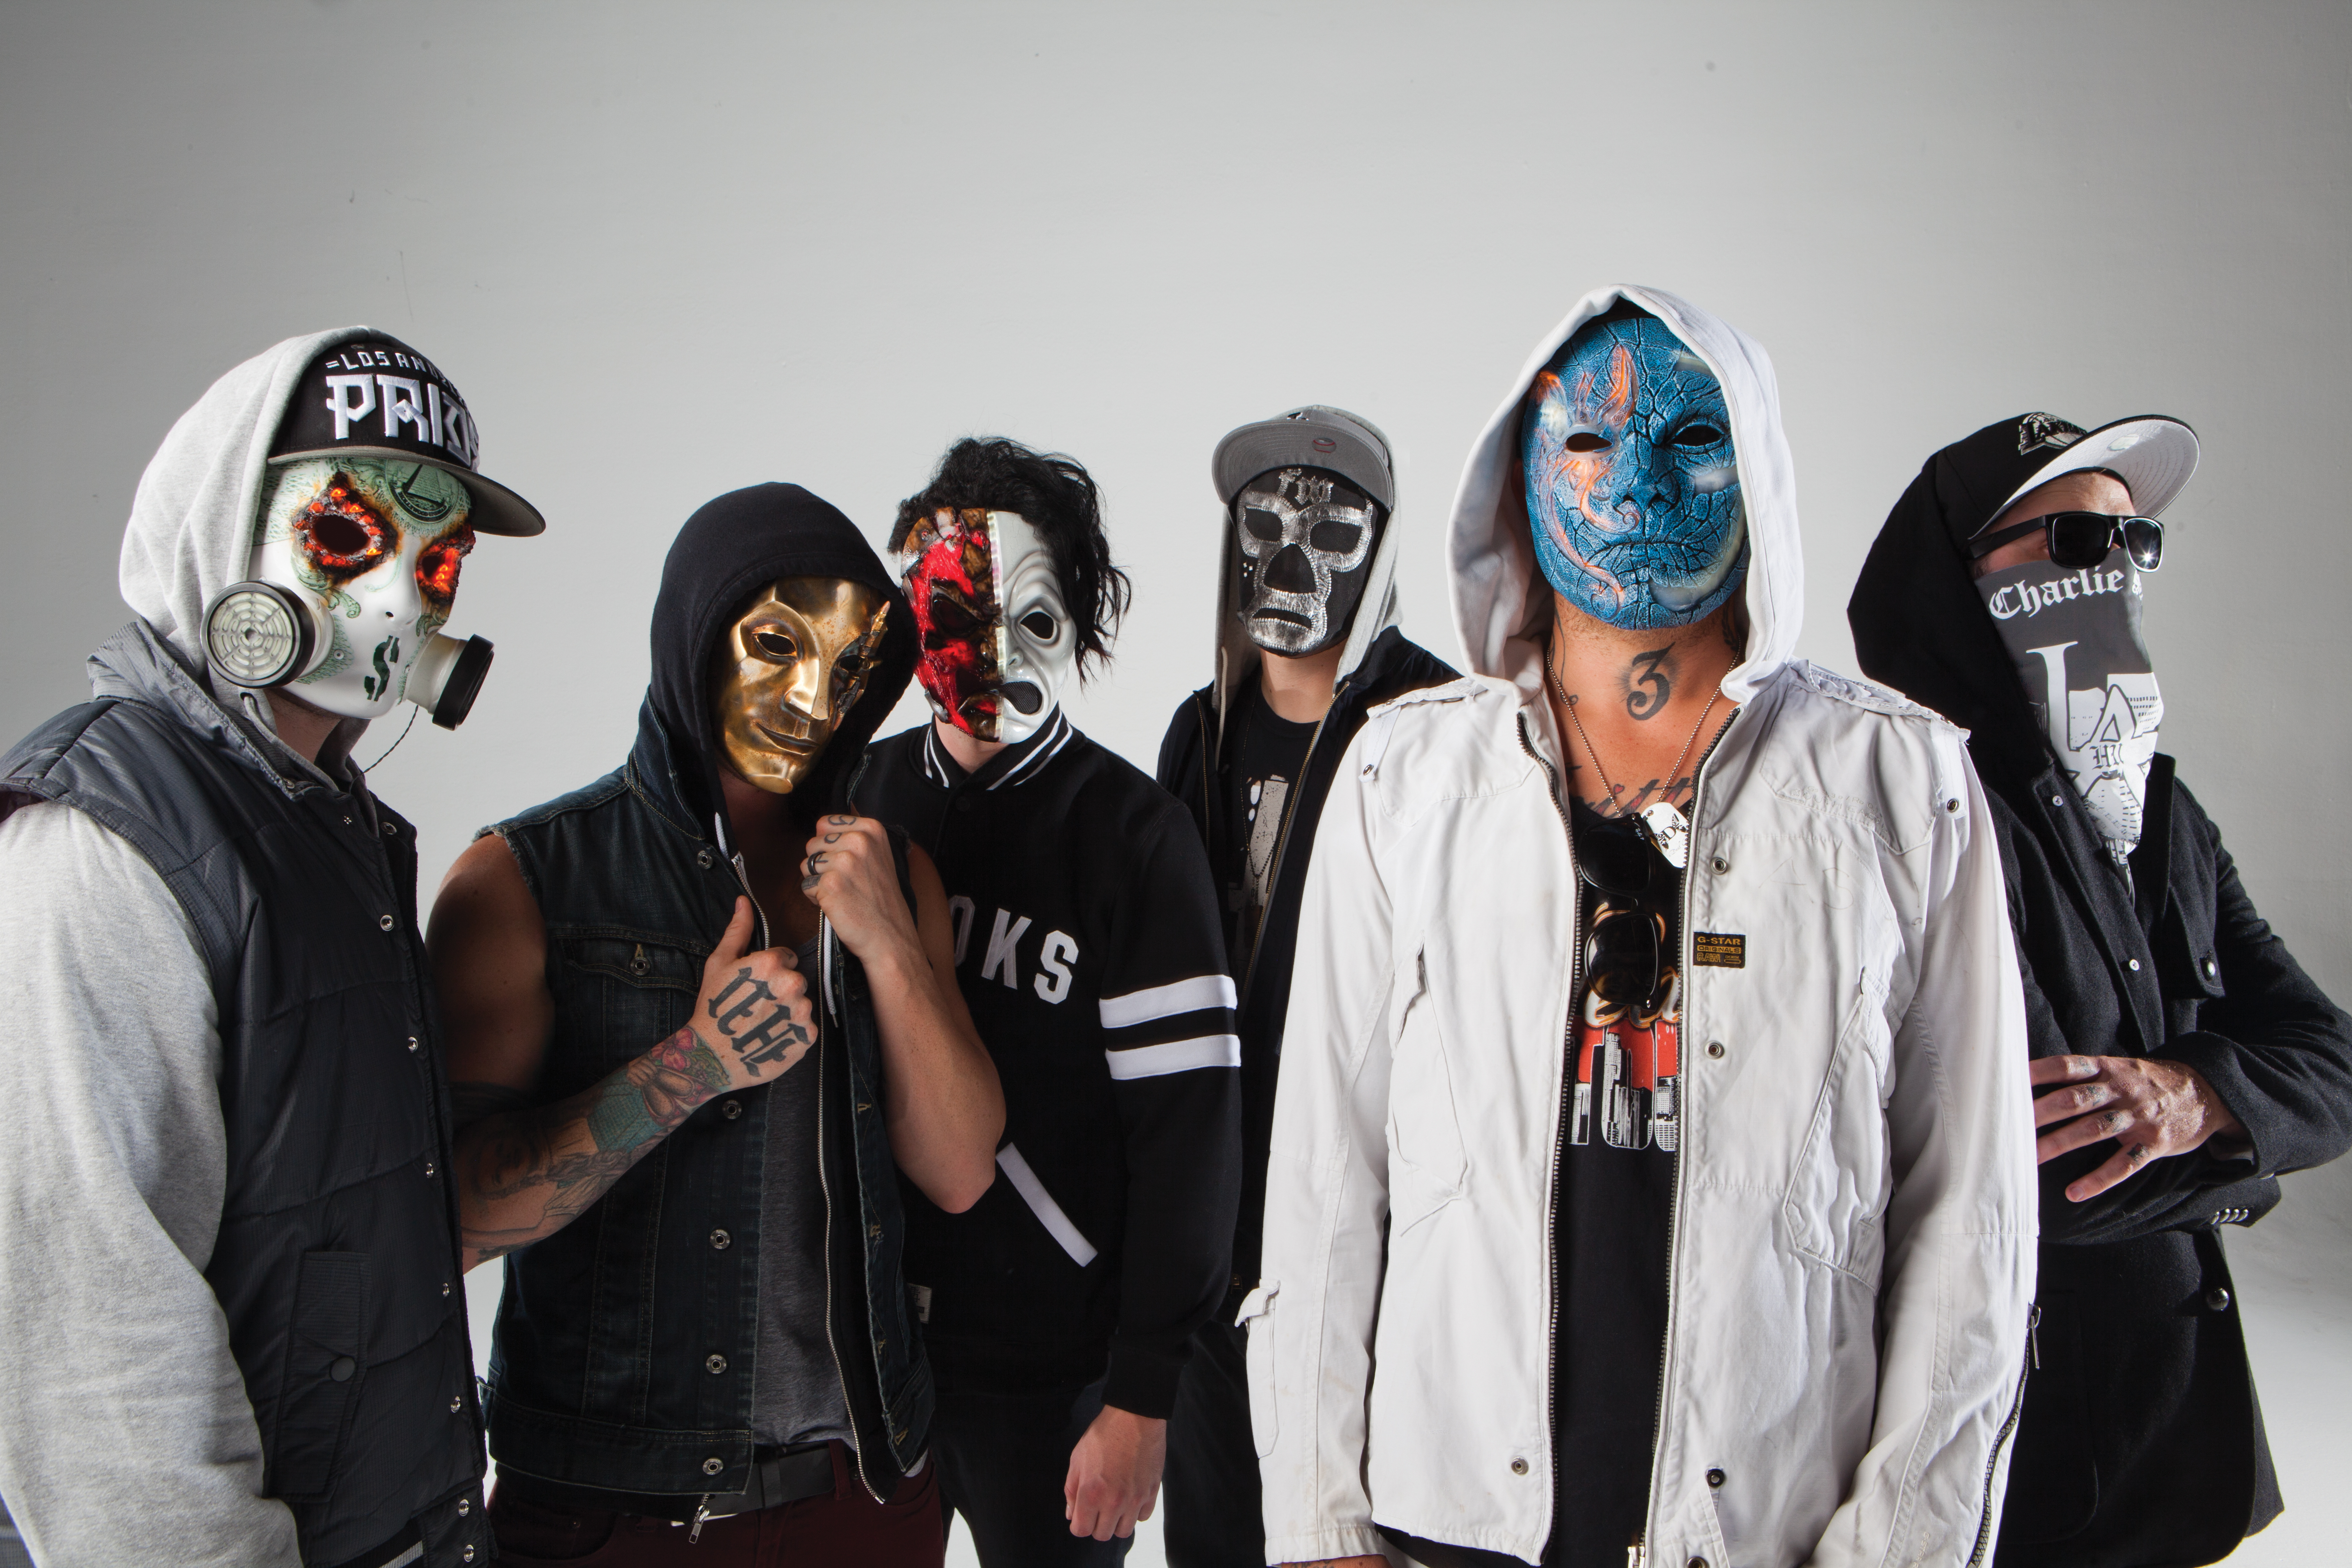 hollywood_undead_by_darkapp-d5lgzsw.jpg